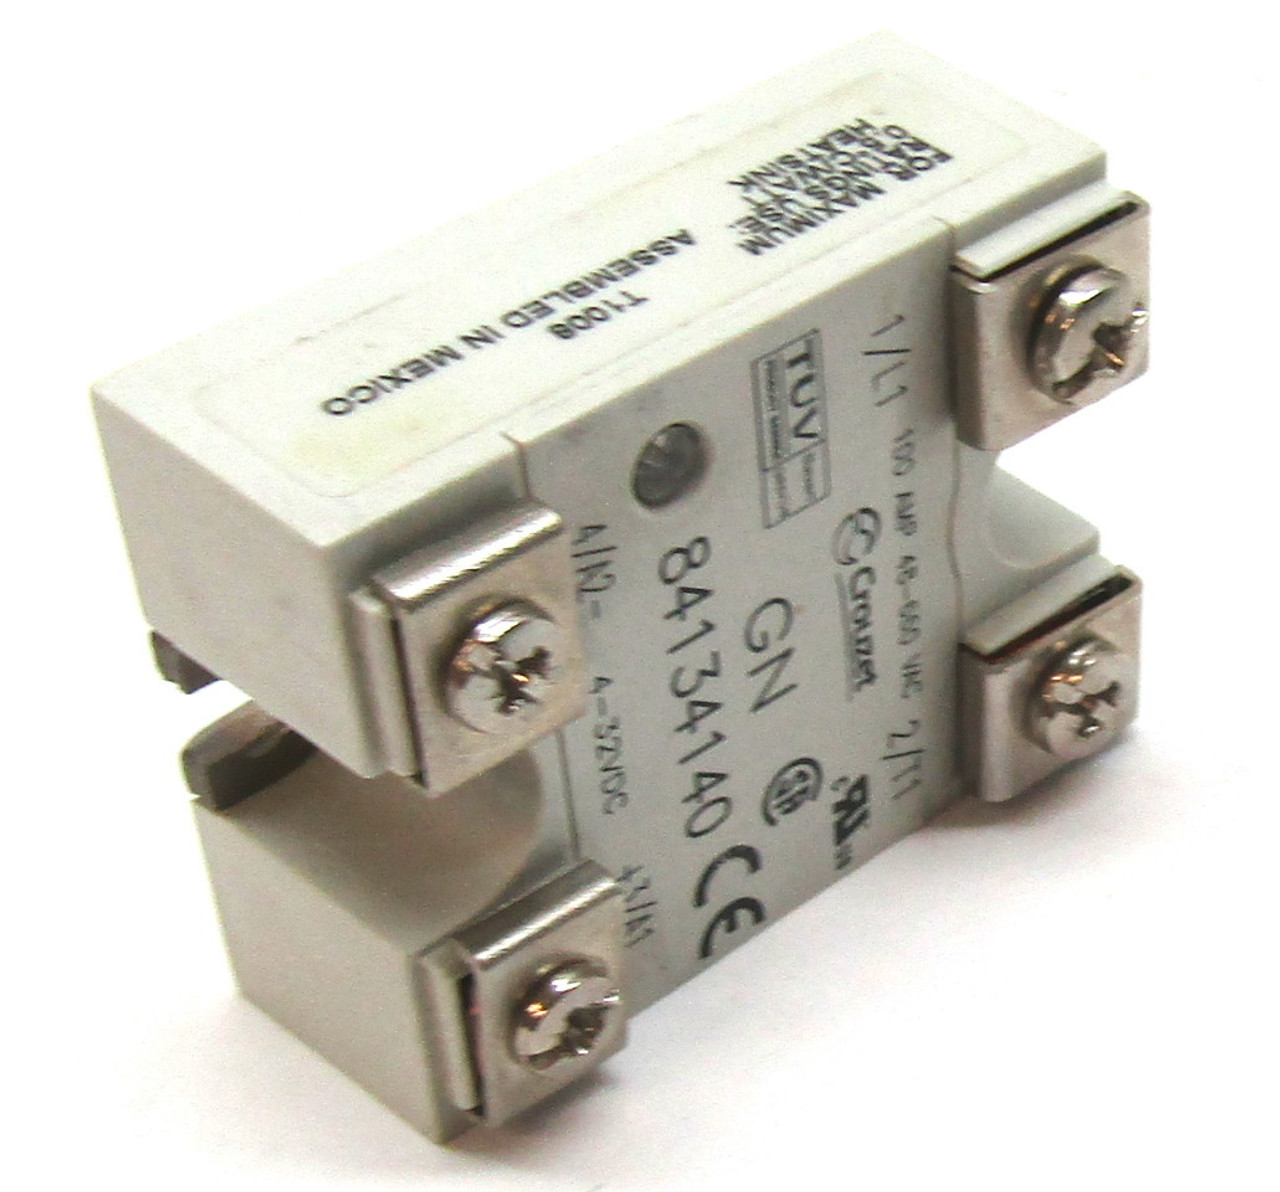 Crouzet 84134140 Solid State Relay 48 660 Vac 100 Amp 2 T1 Working